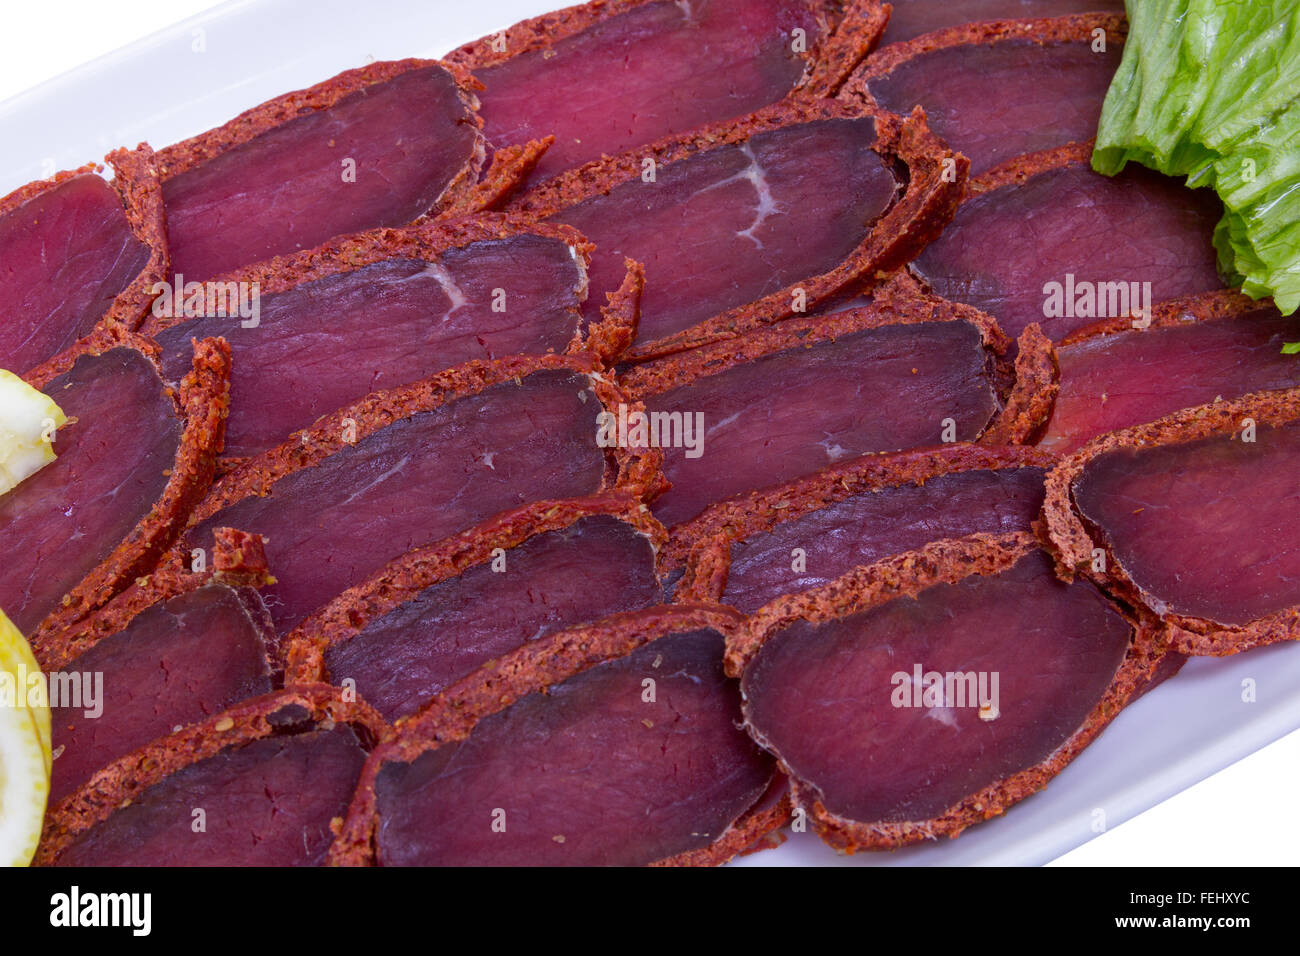 Beef Stock Kaufen Biltong Beef Stock Photos Biltong Beef Stock Images Page 4 Alamy